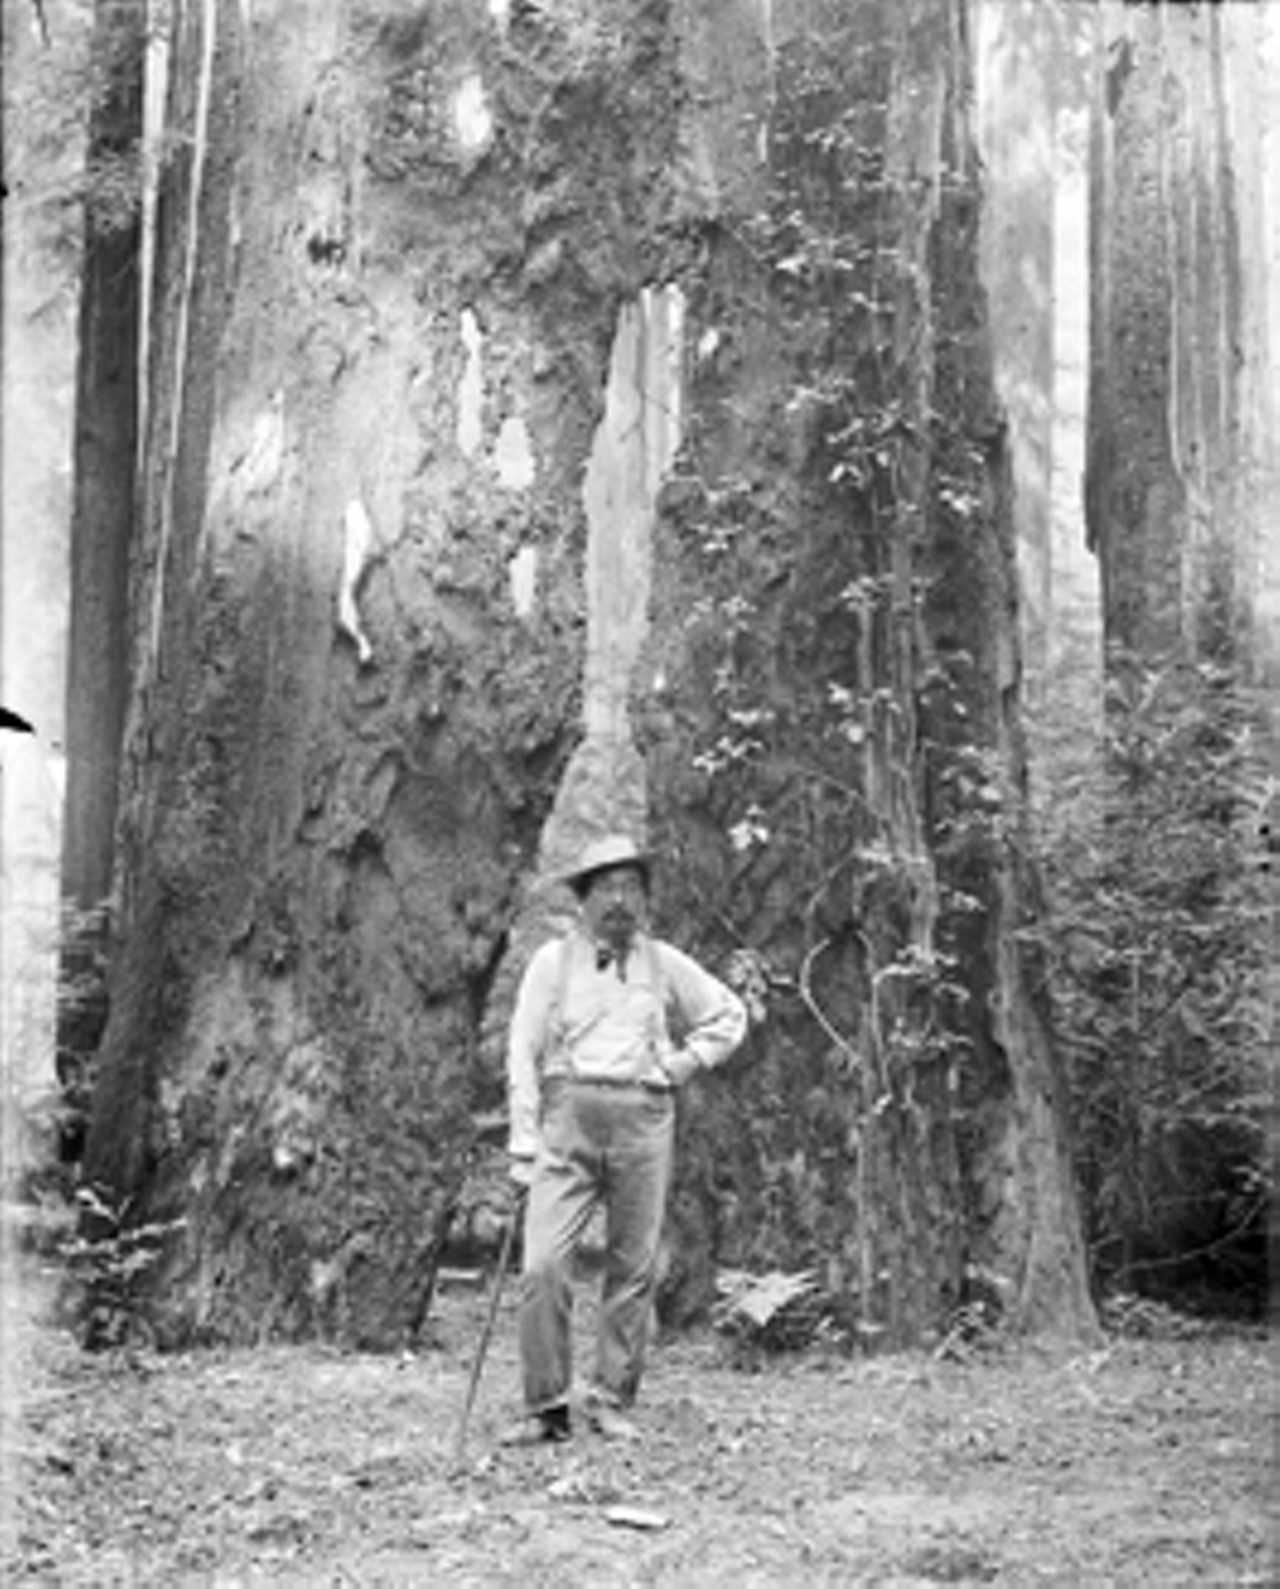 bohemian grove logging edging closer culture north bay bohemian courtesy bancroft library